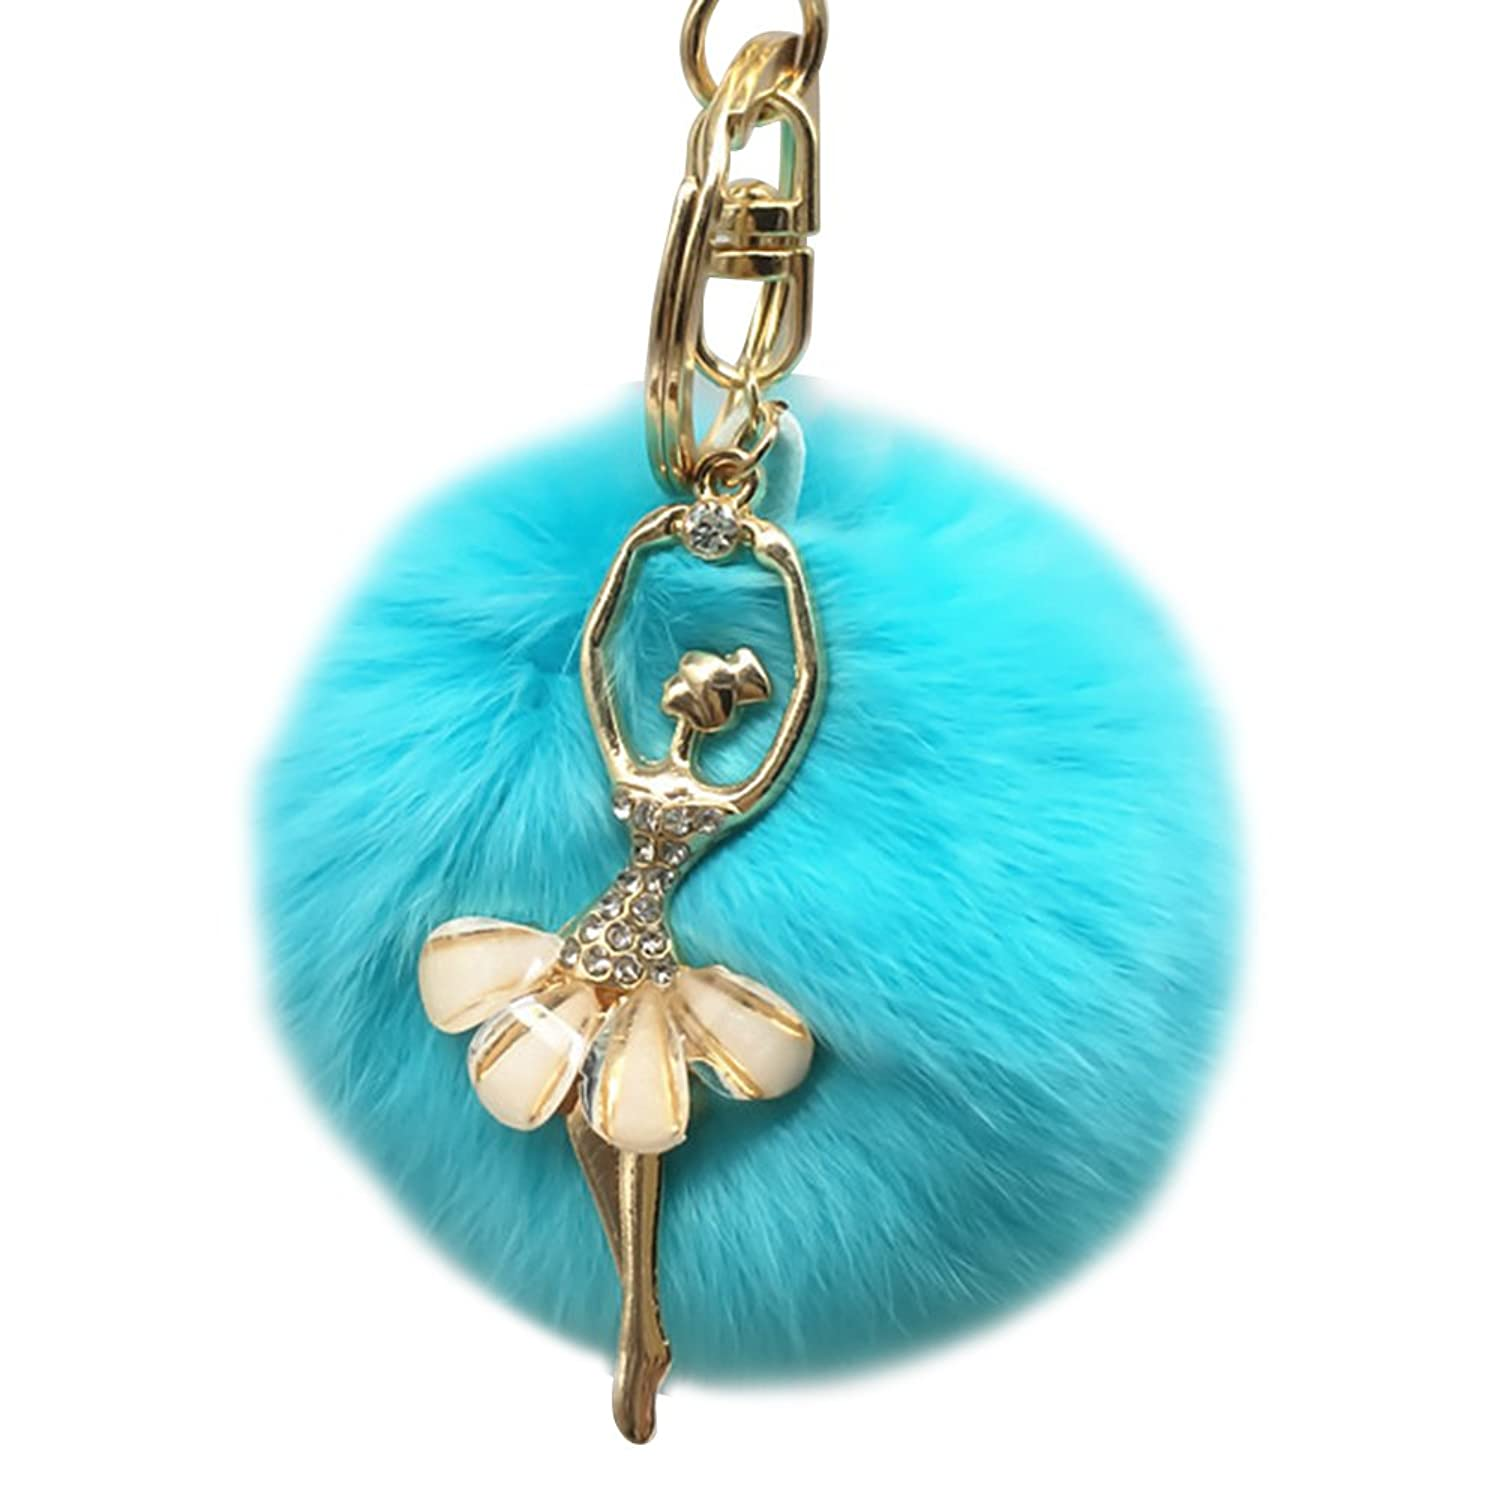 Cute Furry Ball Keychain Bag Charm Car Key Ring with Dancing Girl